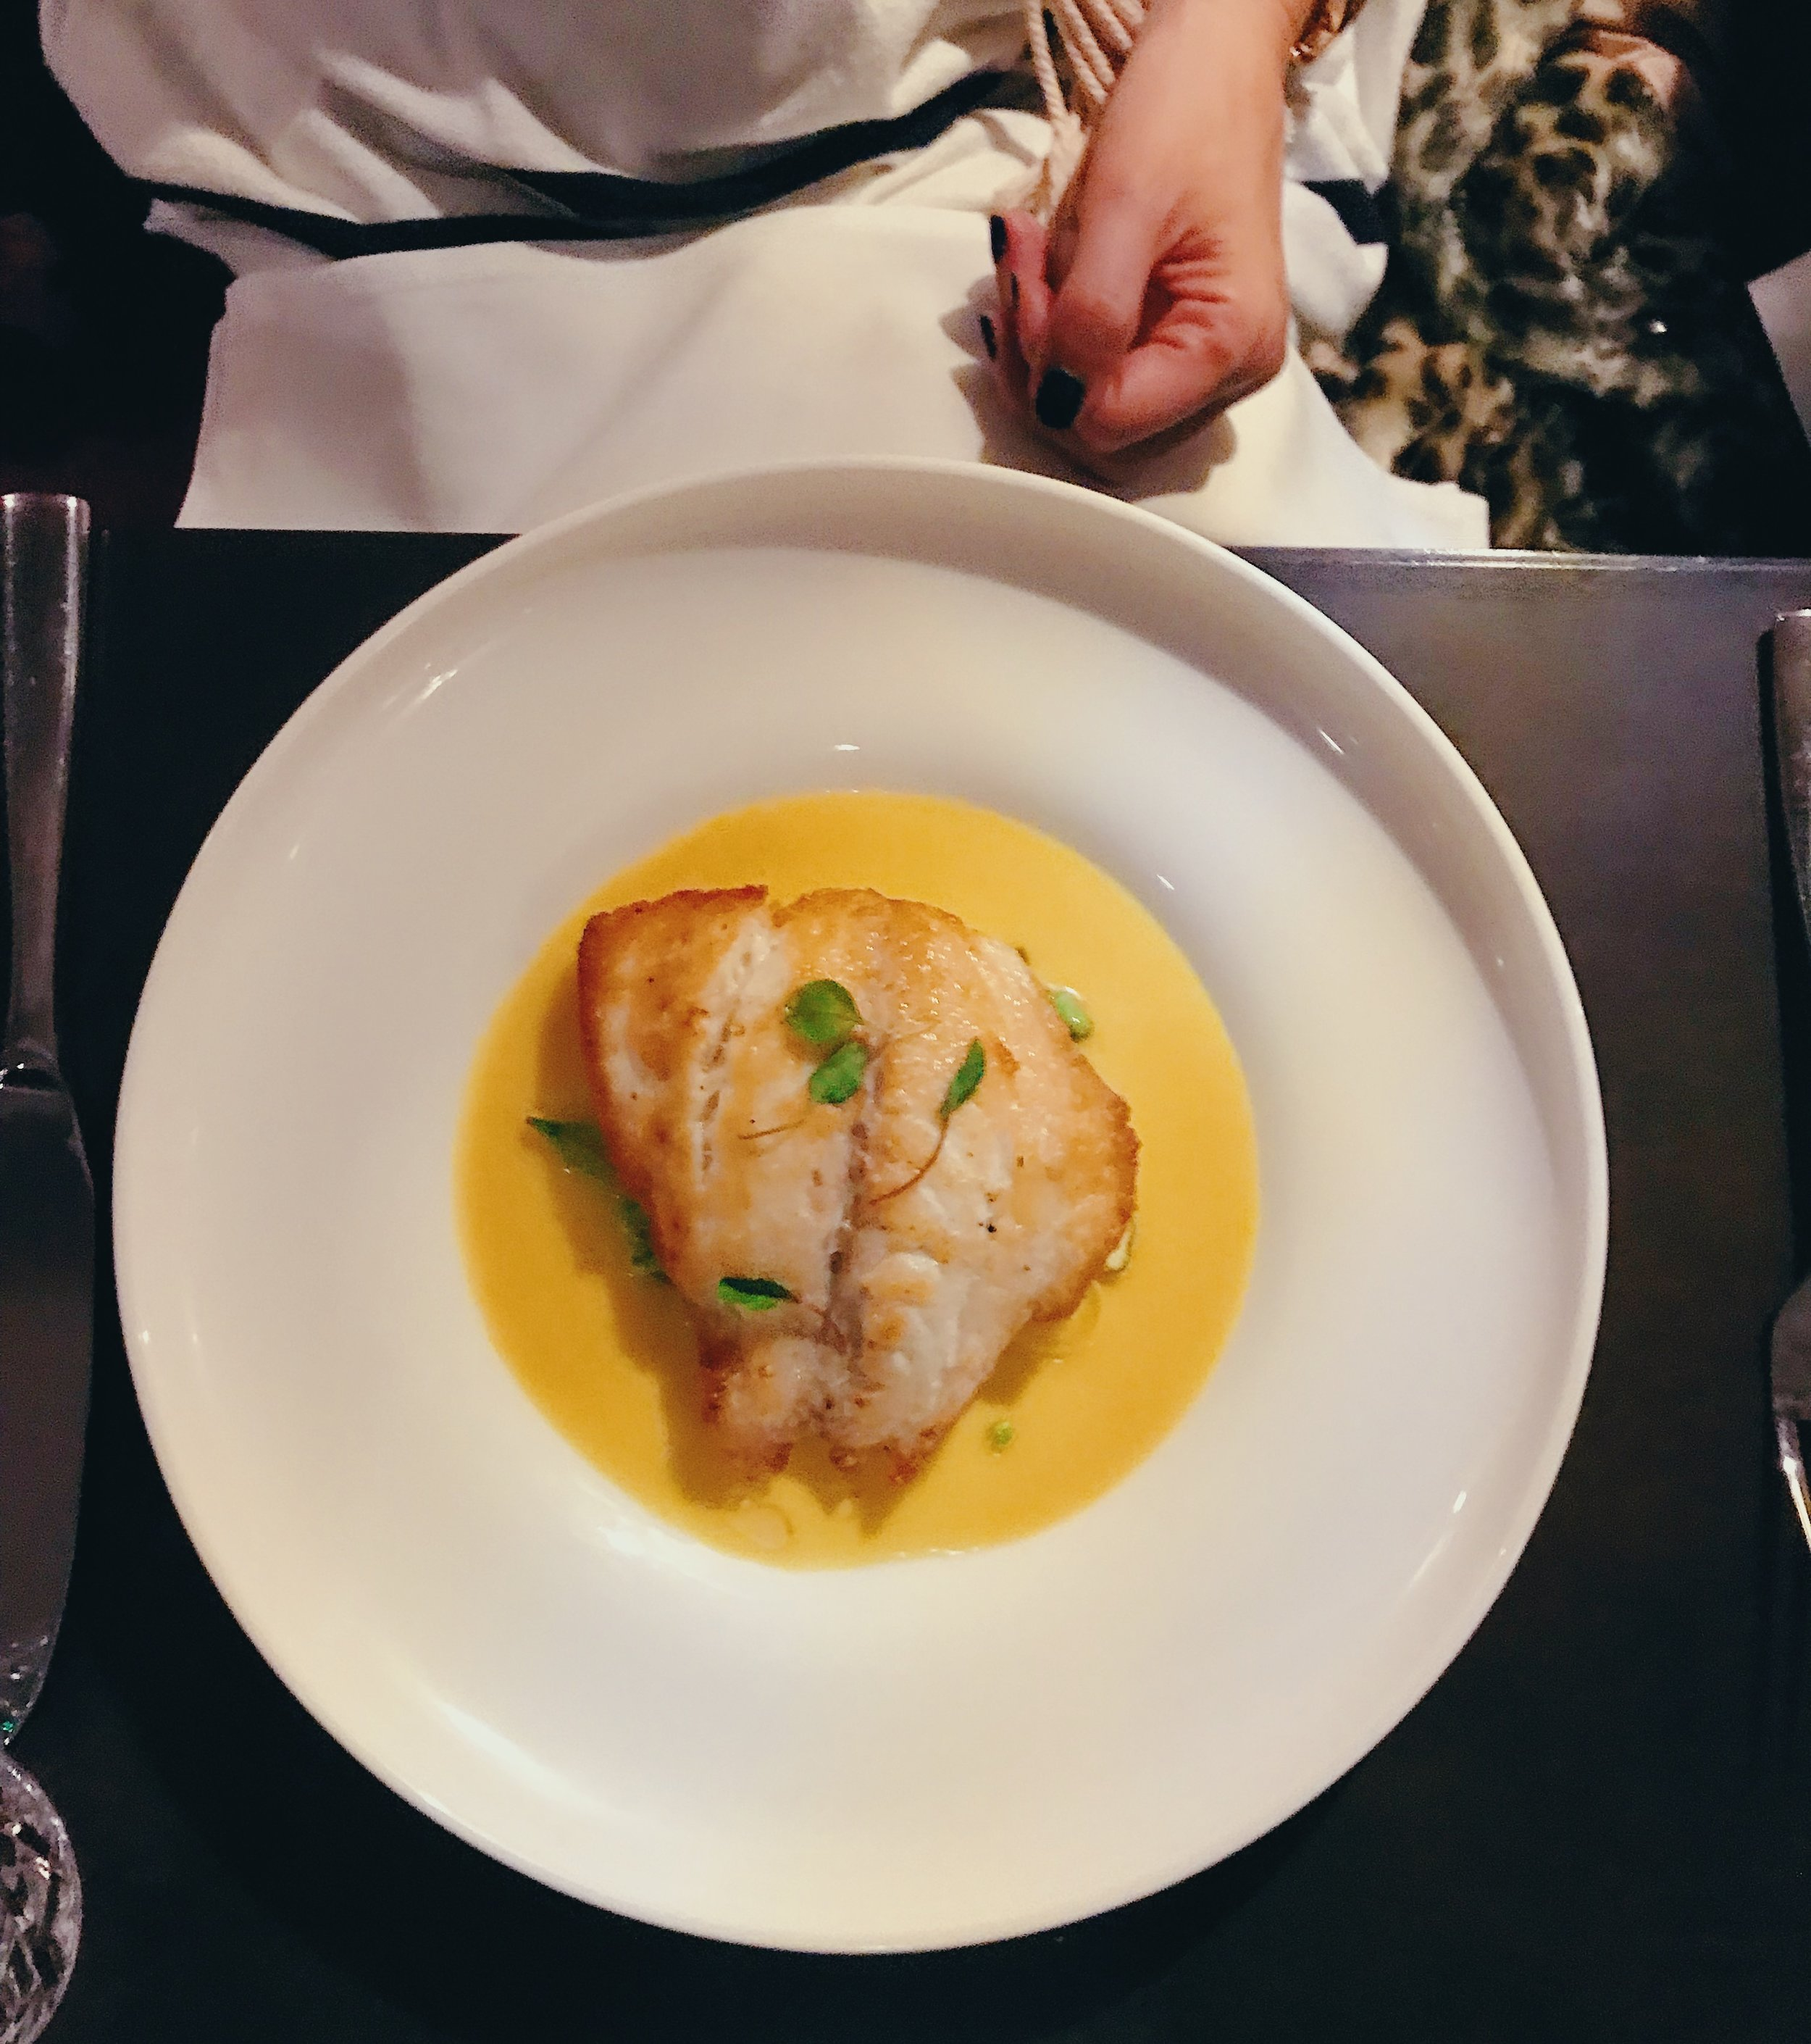 I Love That For You - Josephine Wine Bar Entree Chicken.jpg